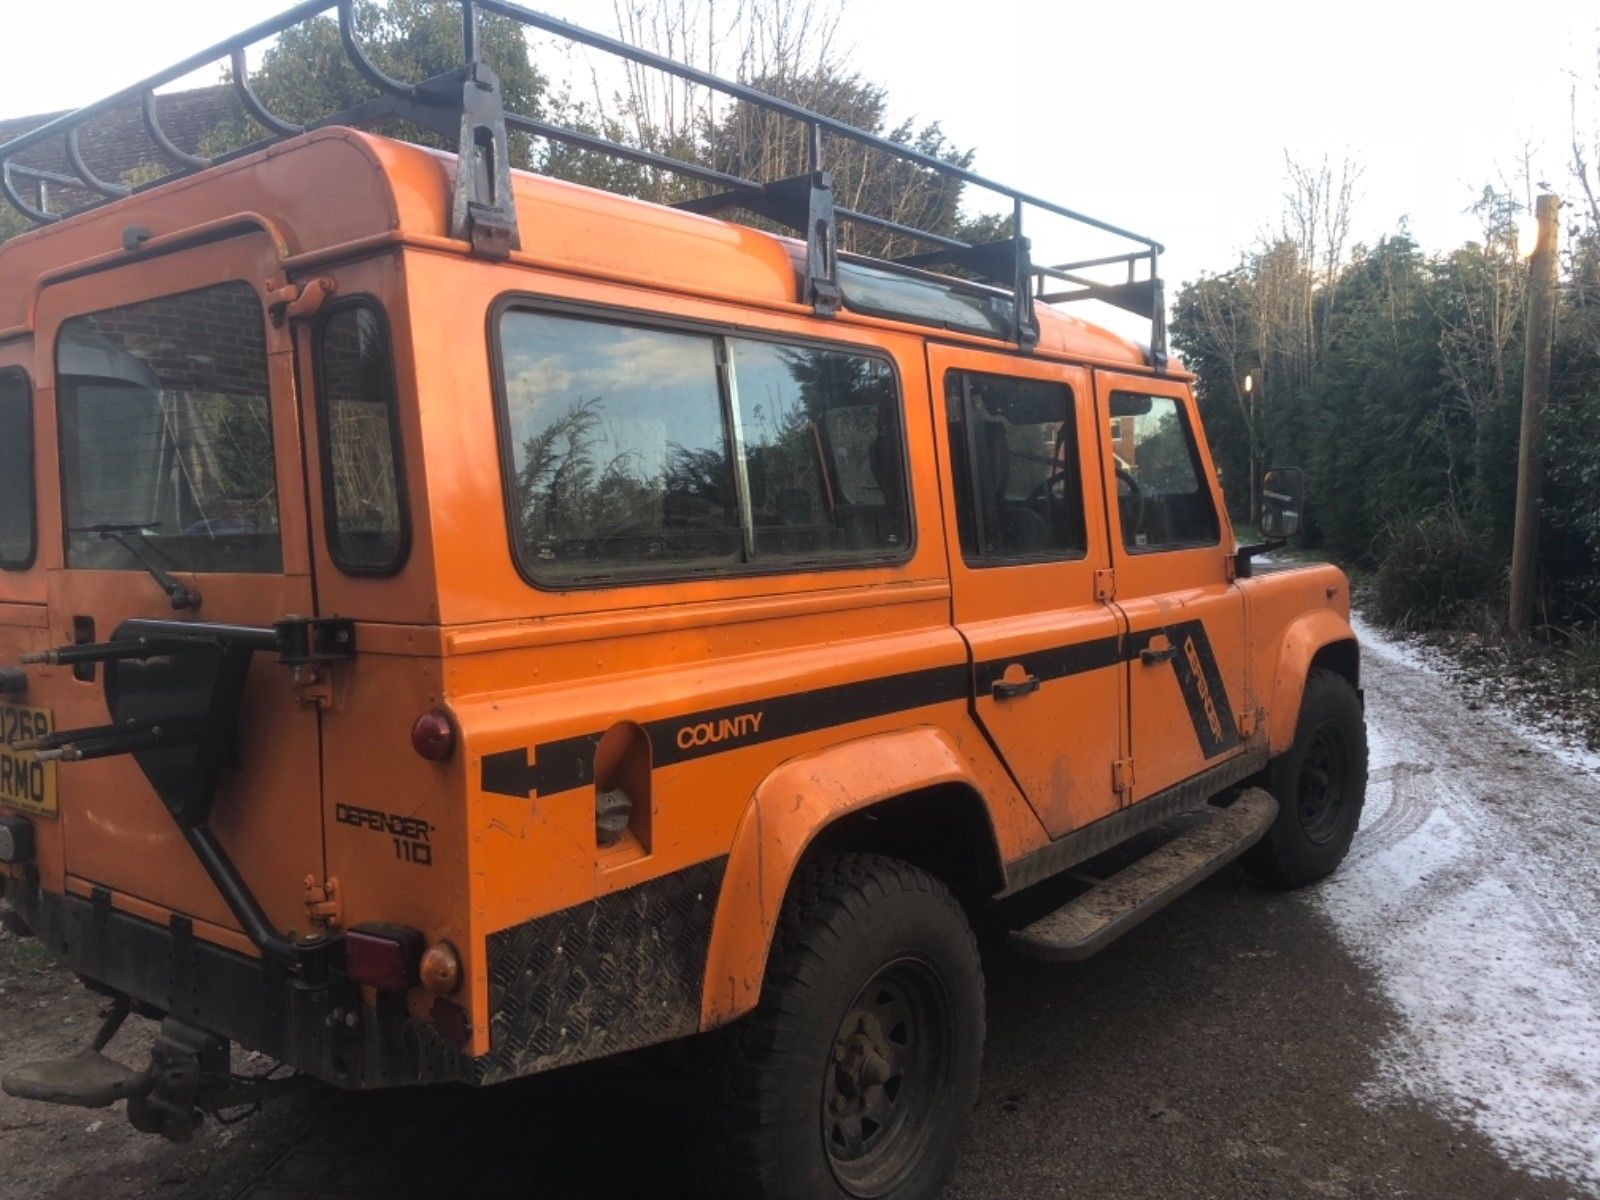 for landrover sale roads rovers its land rover making own years h vintage news of marks